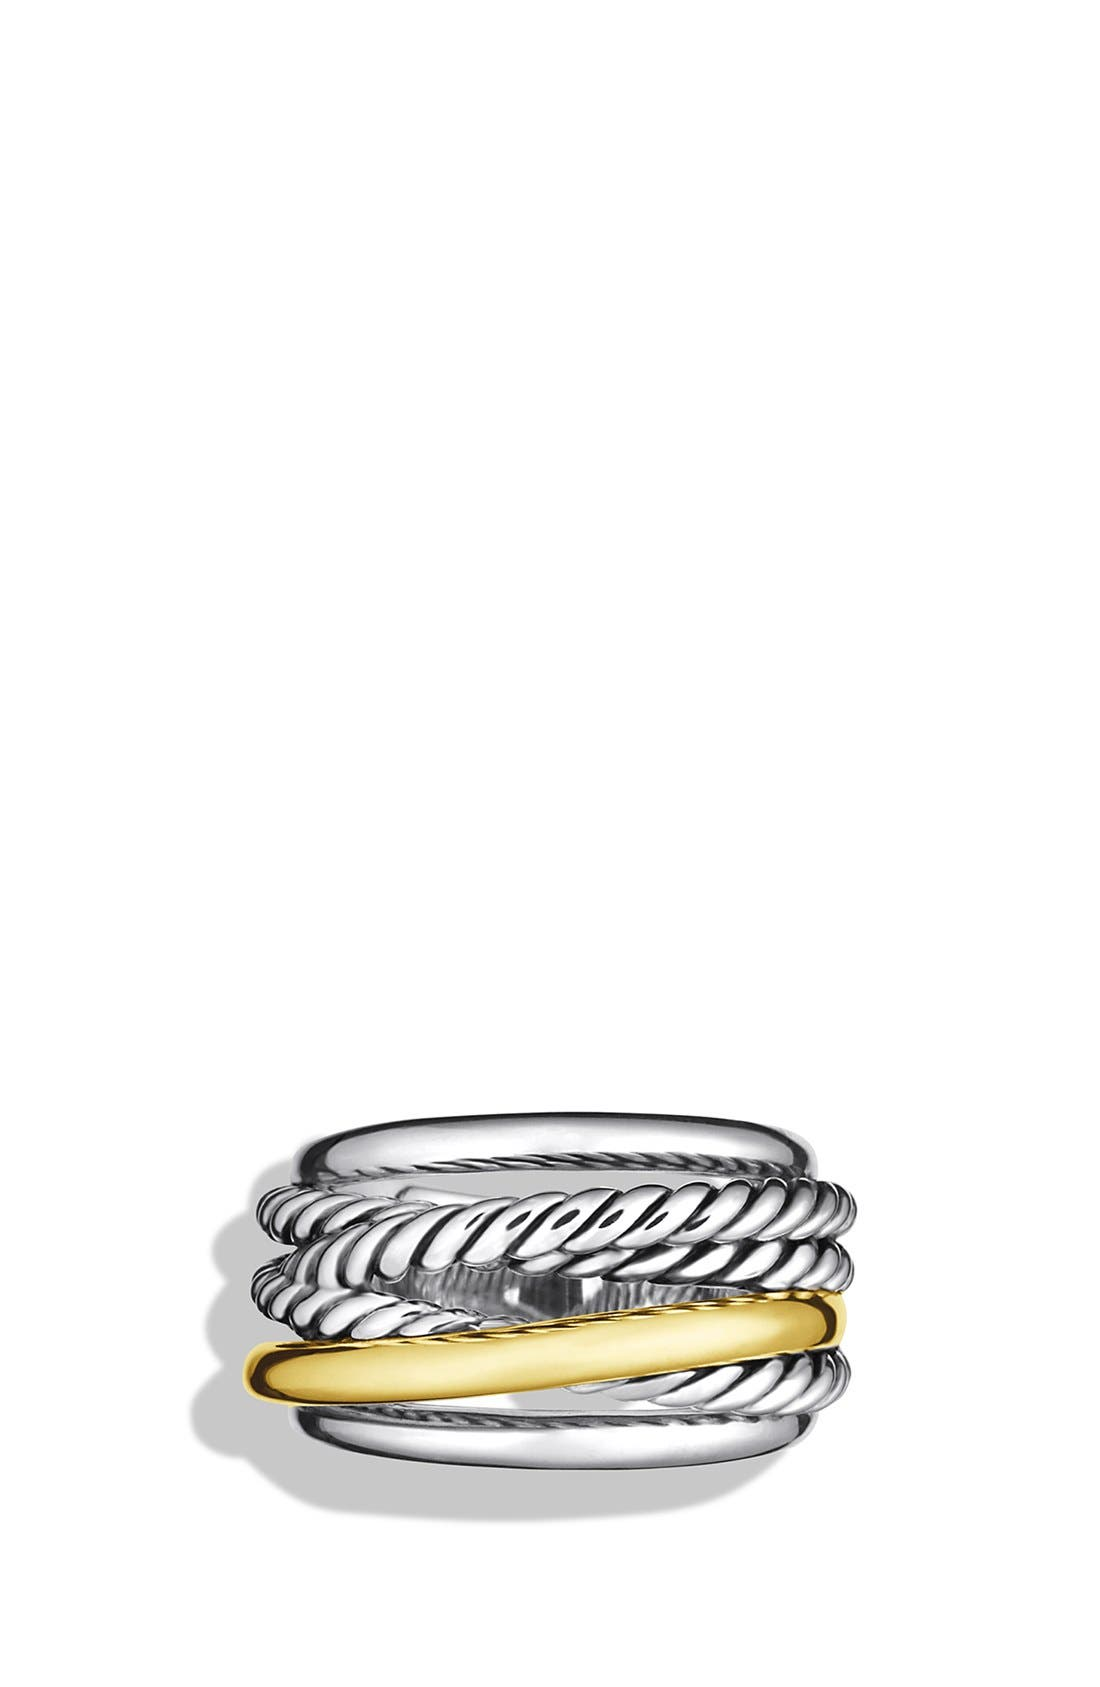 Alternate Image 3  - David Yurman 'Crossover' Narrow Ring with Gold